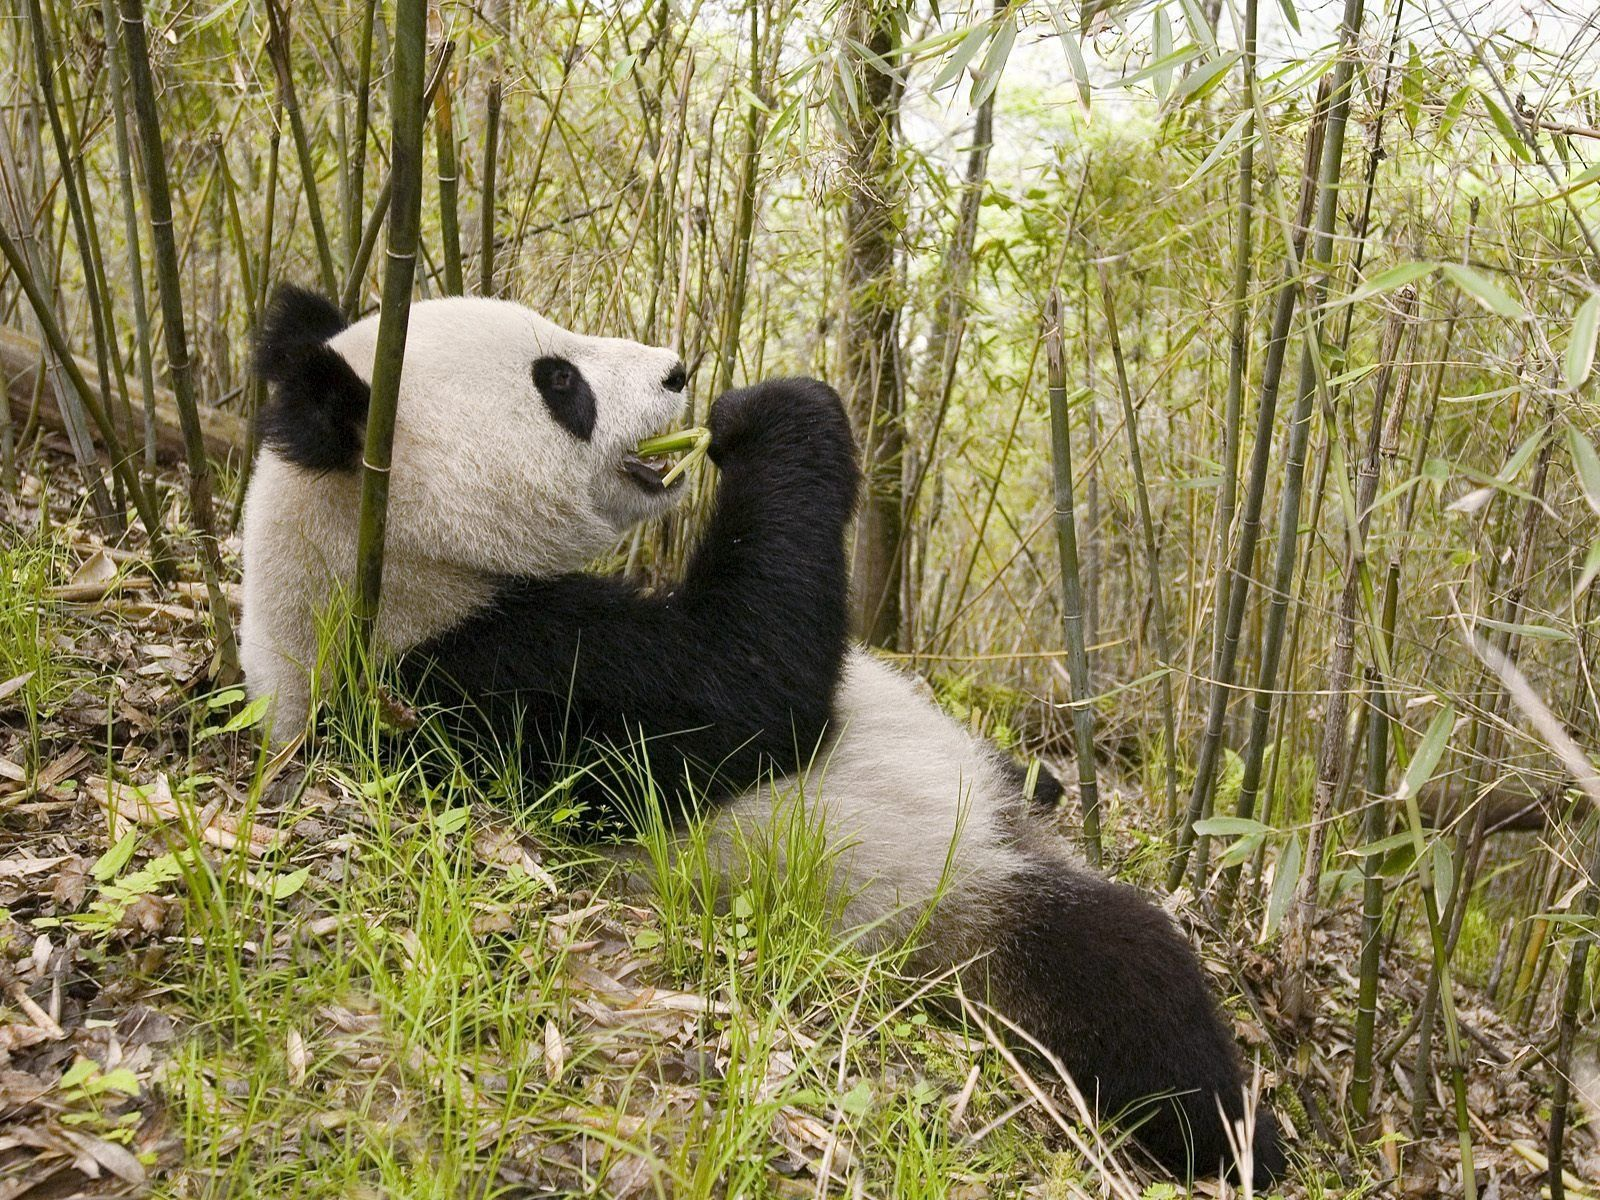 123899 download wallpaper Animals, Panda, Grass, To Lie Down, Lie, Trees screensavers and pictures for free